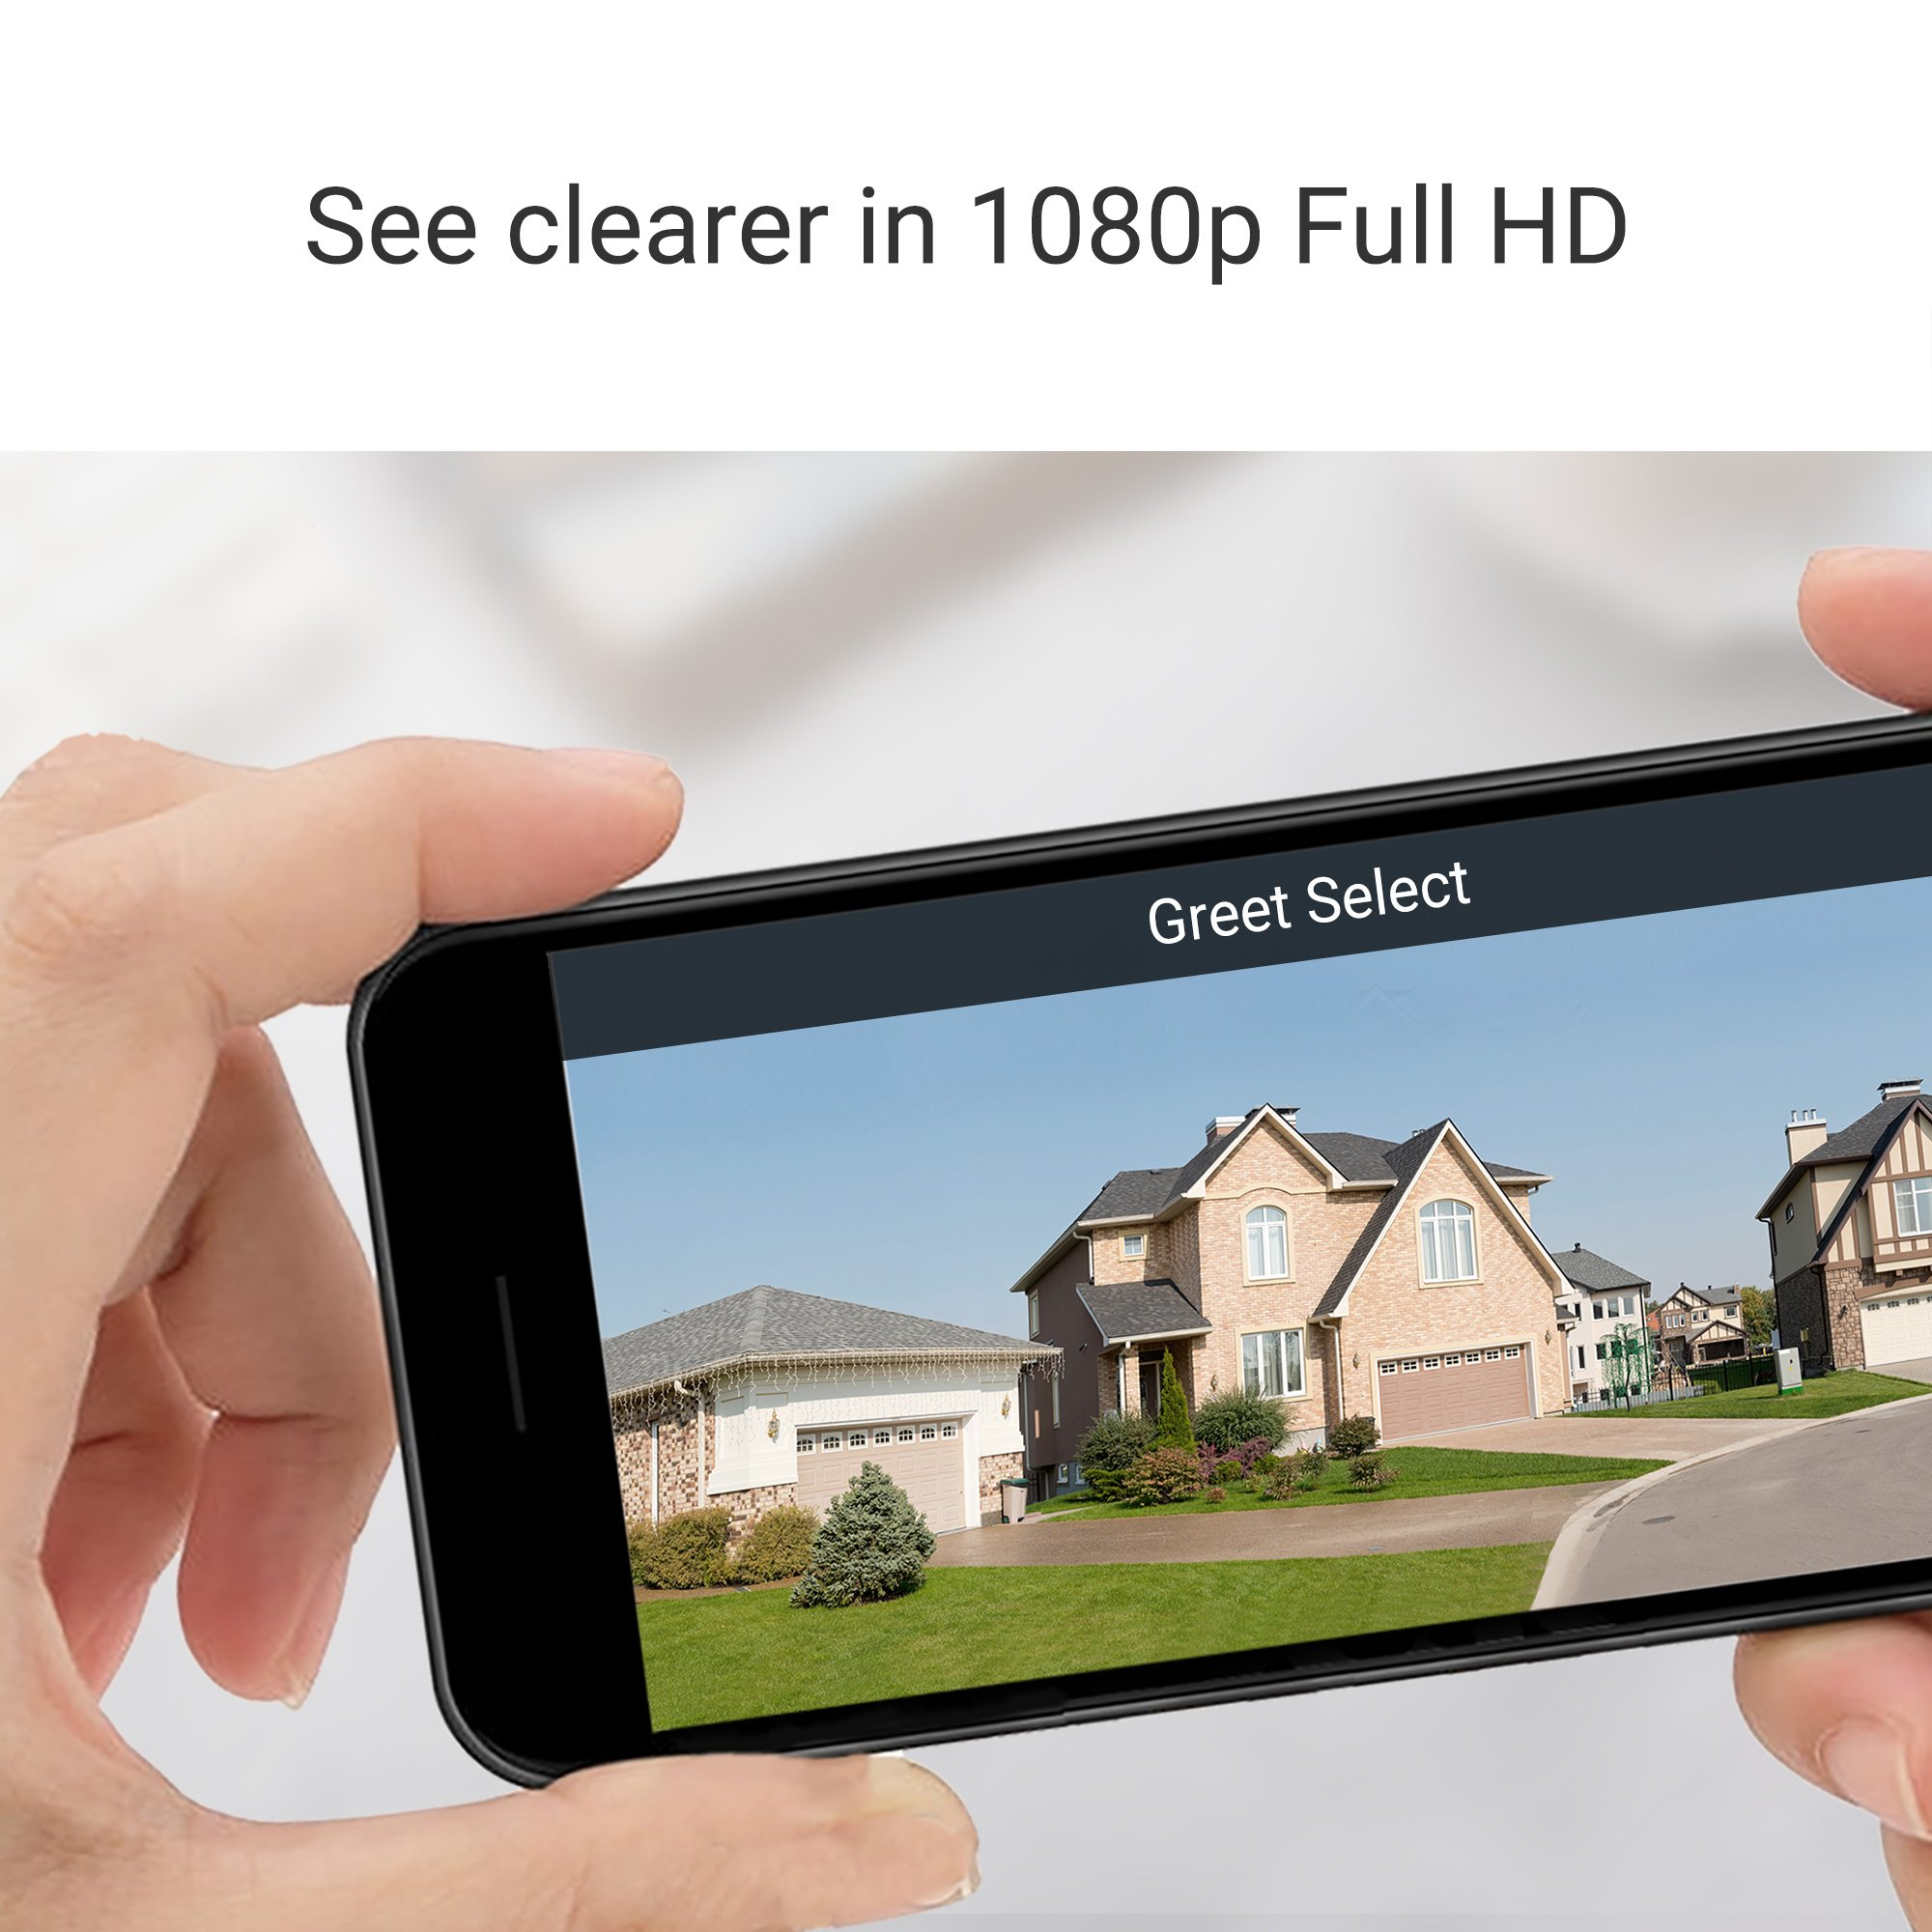 Zmodo Greet Select WiFi Video Doorbell, 1080p Full HD Camera, Free 30-Day Cloud Service, Works with Alexa by Zmodo (Image #2)